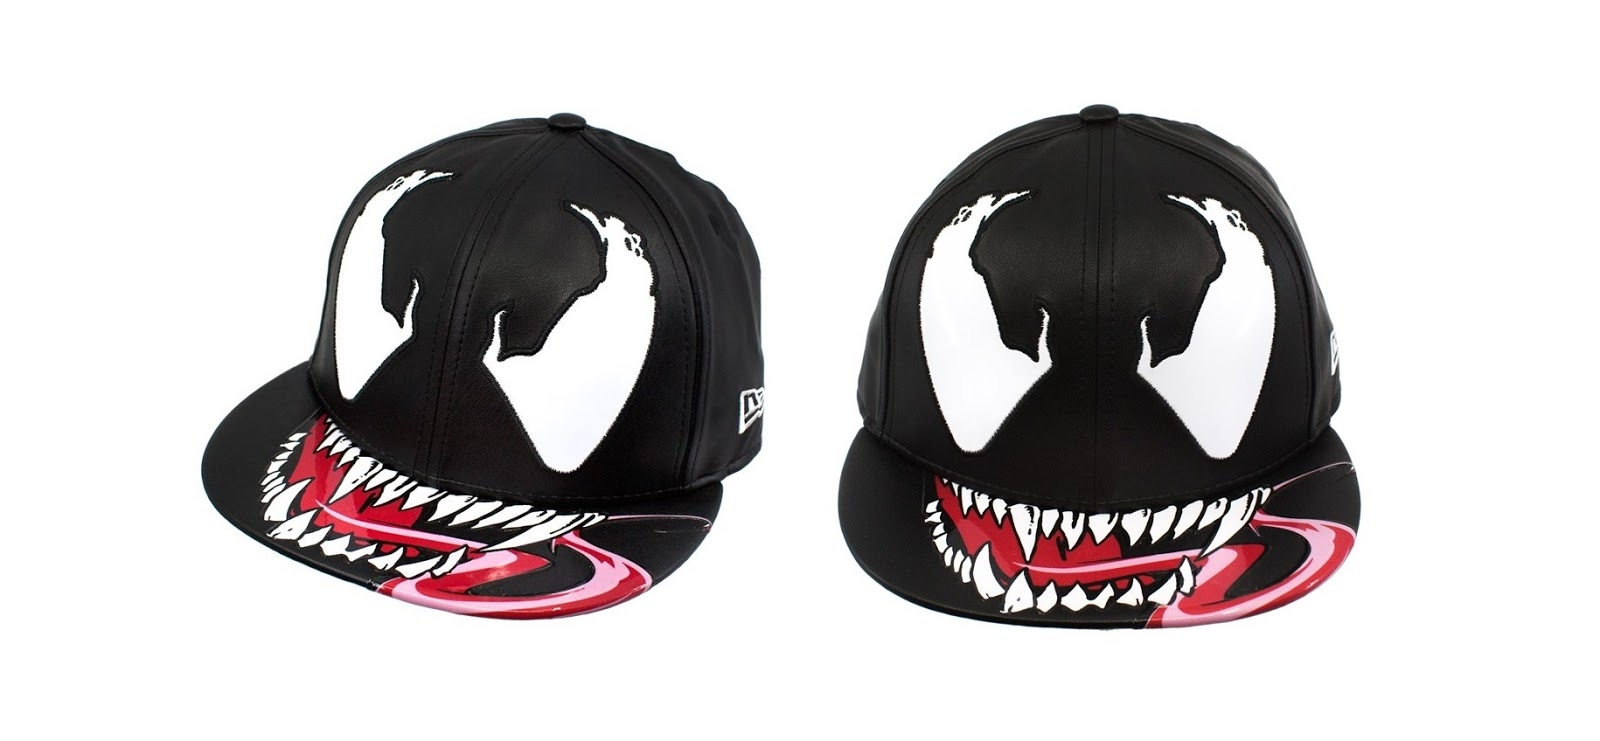 Venom Character Armor 59Fifty Fitted Hat By New Era Cap X Marvel A Super Hero Stuff Exclusive